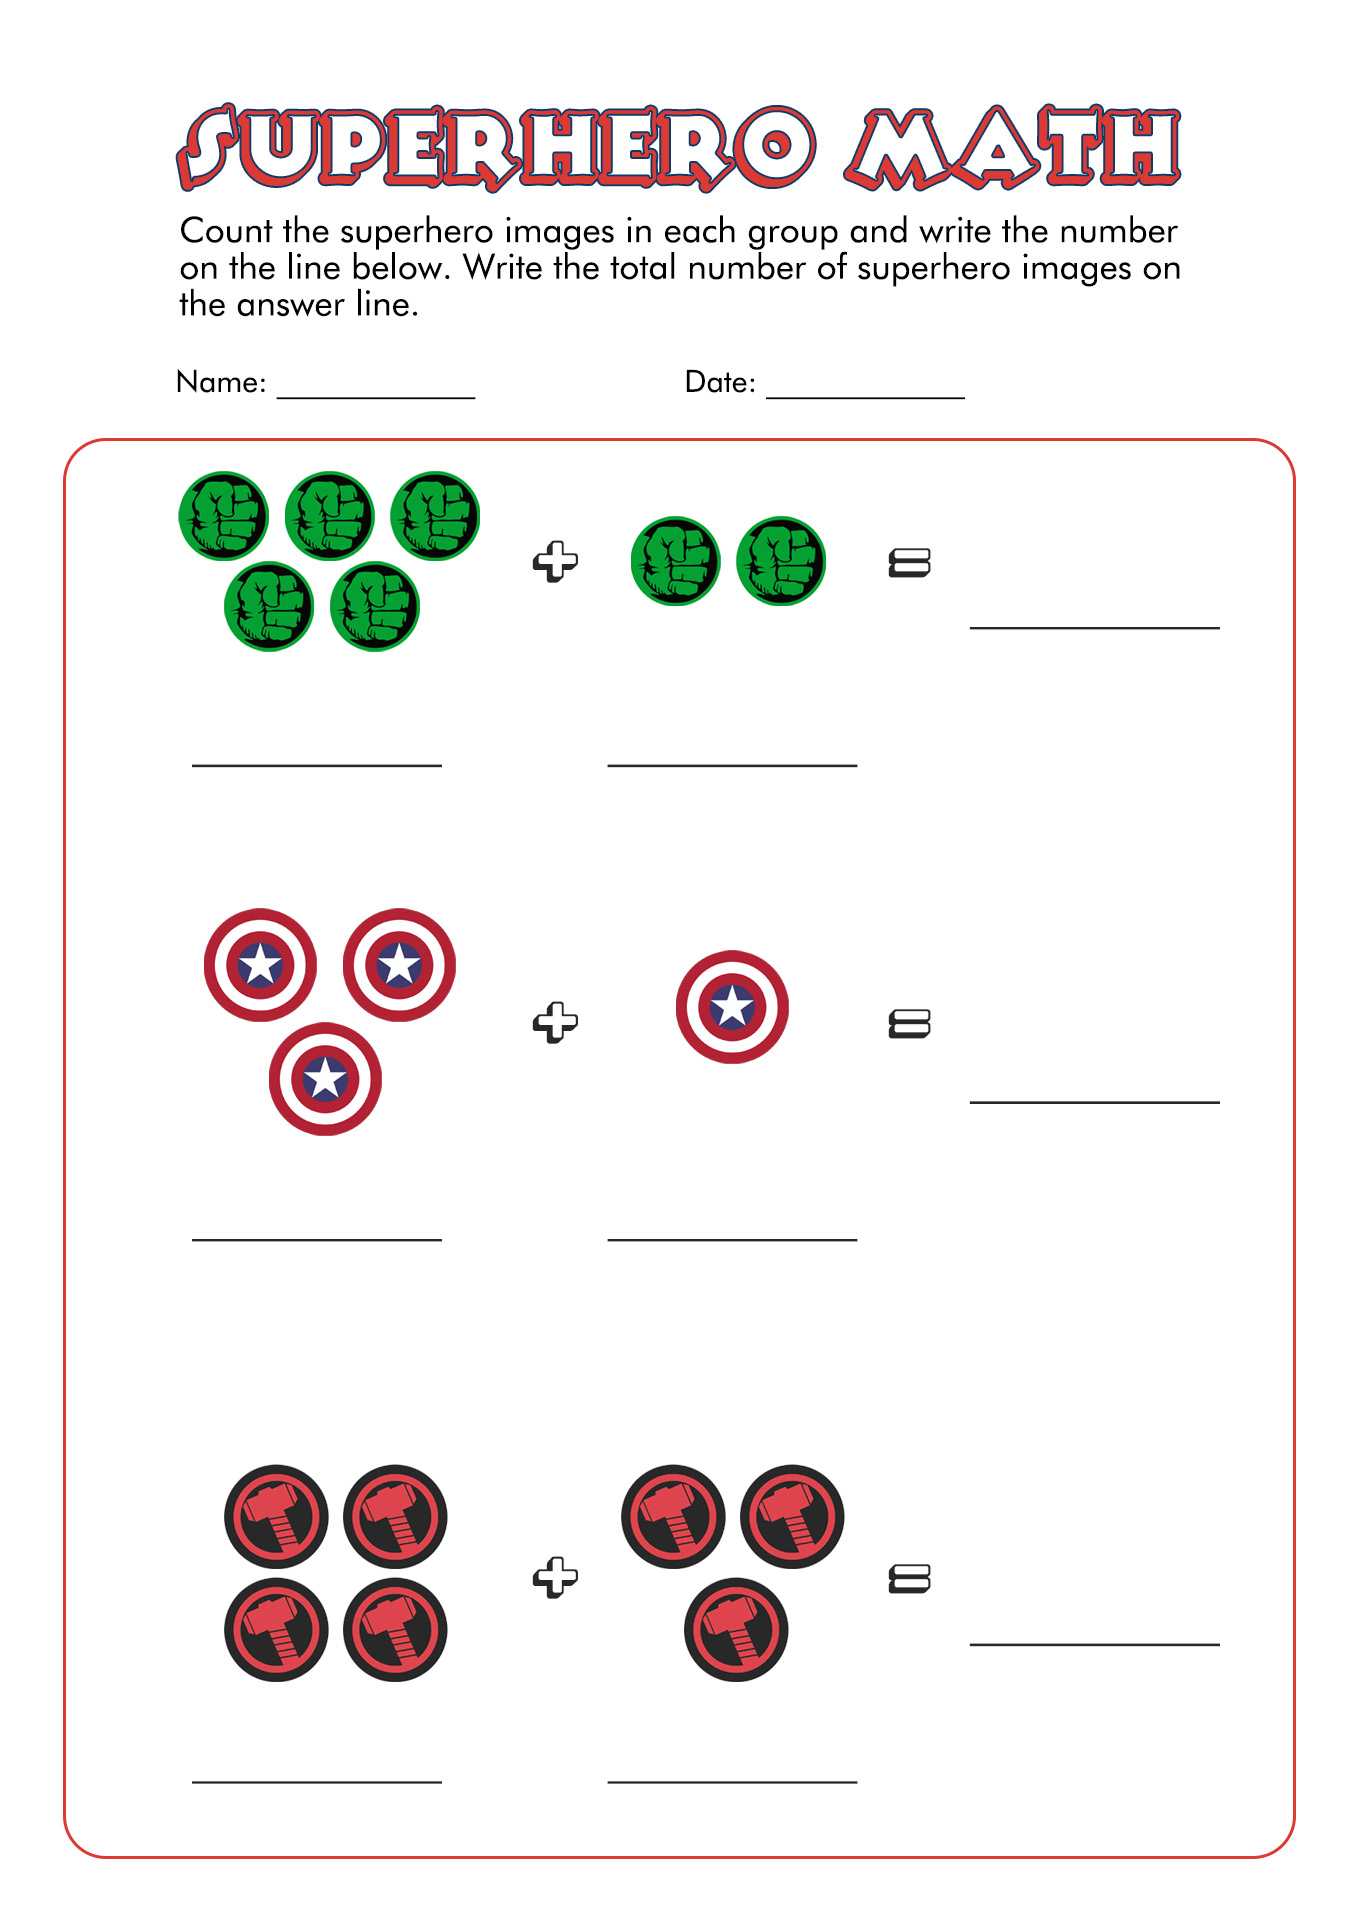 19 Best Images of Superhero Classroom School Worksheets